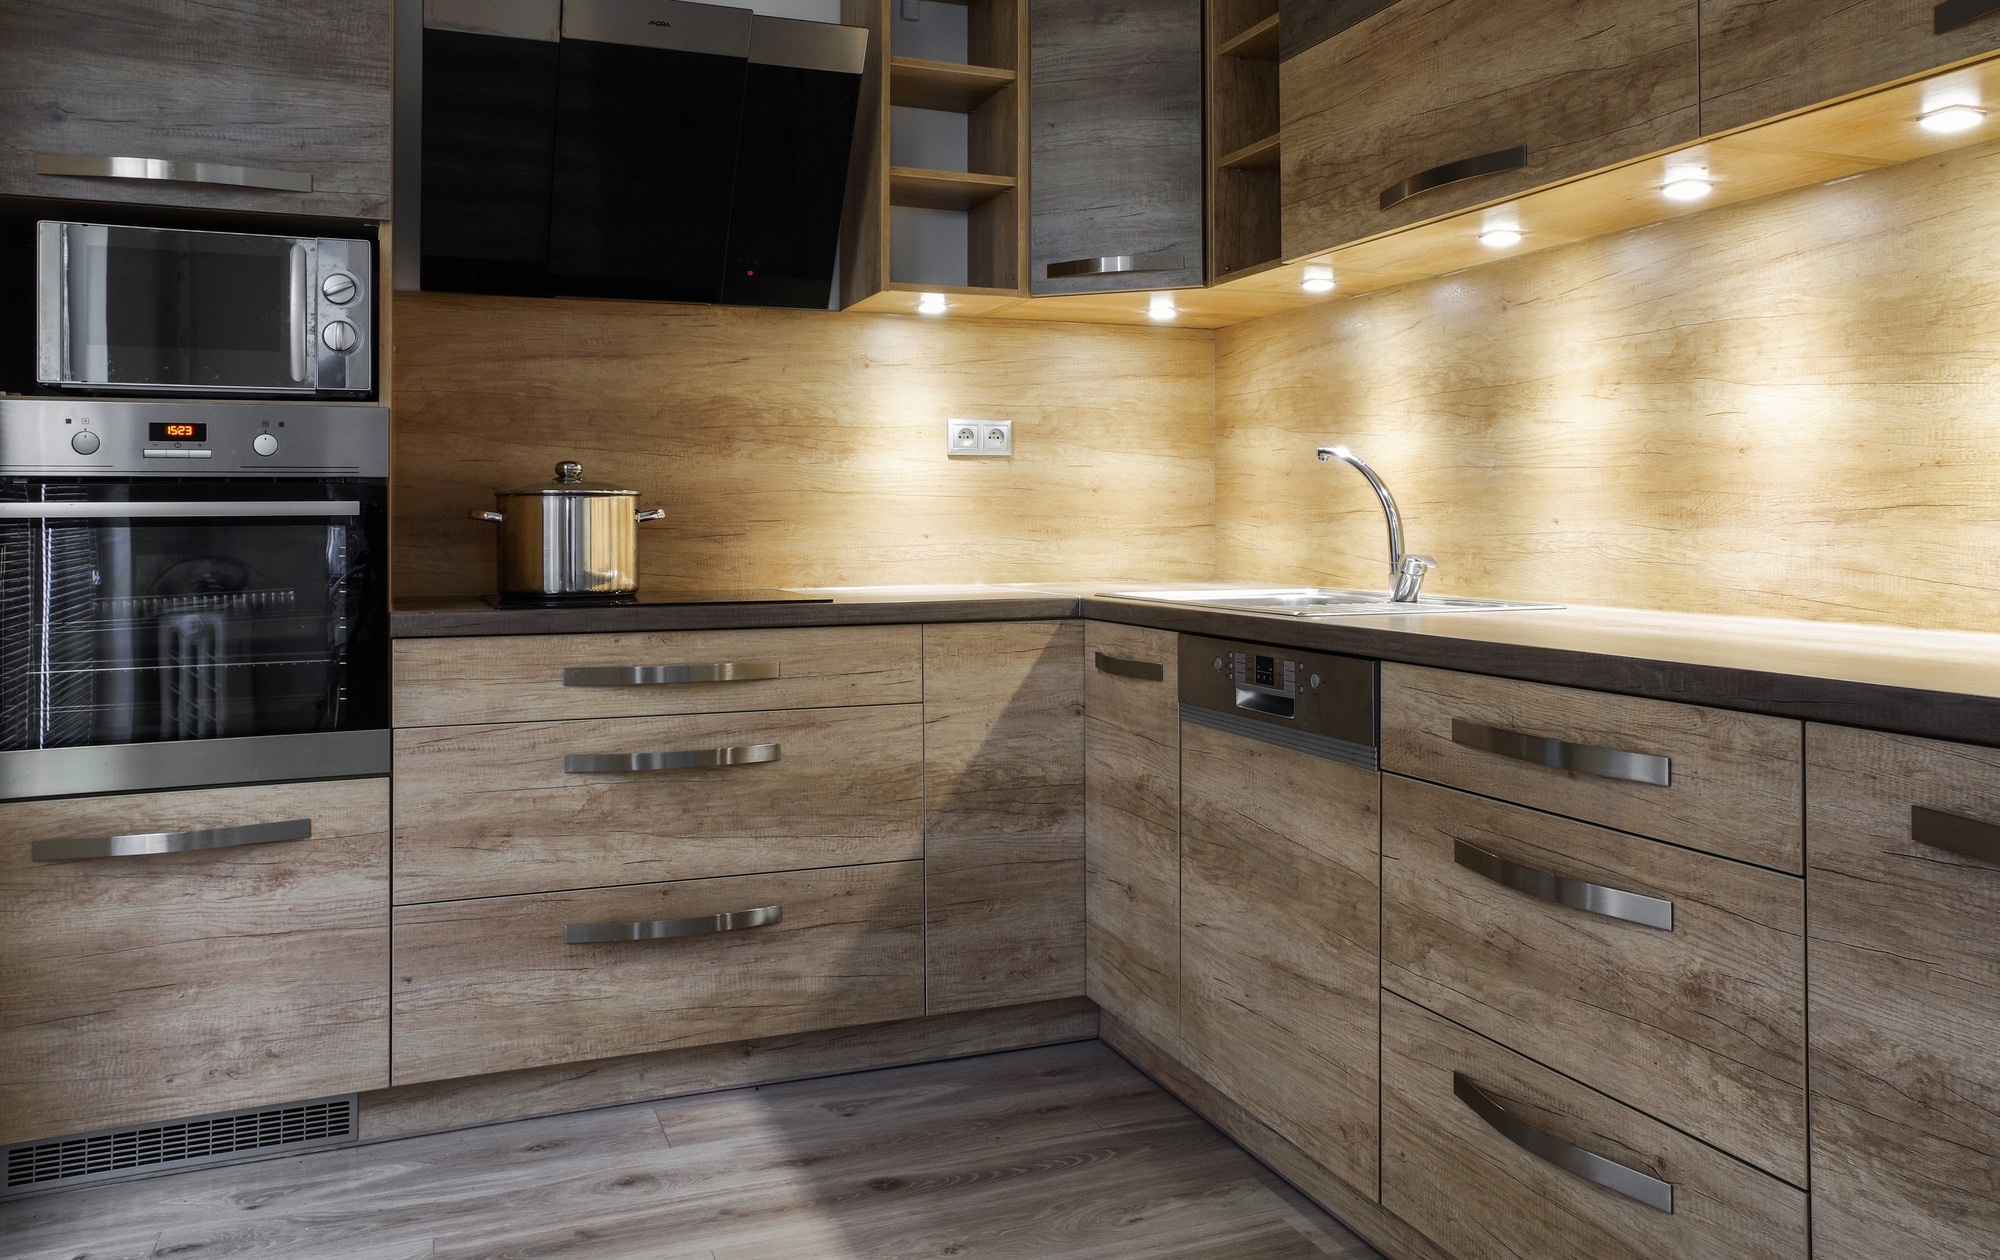 Best Semi Custom Kitchen Cabinets Custom vs Semi Custom Cabinets: Which Is Best For Your Home